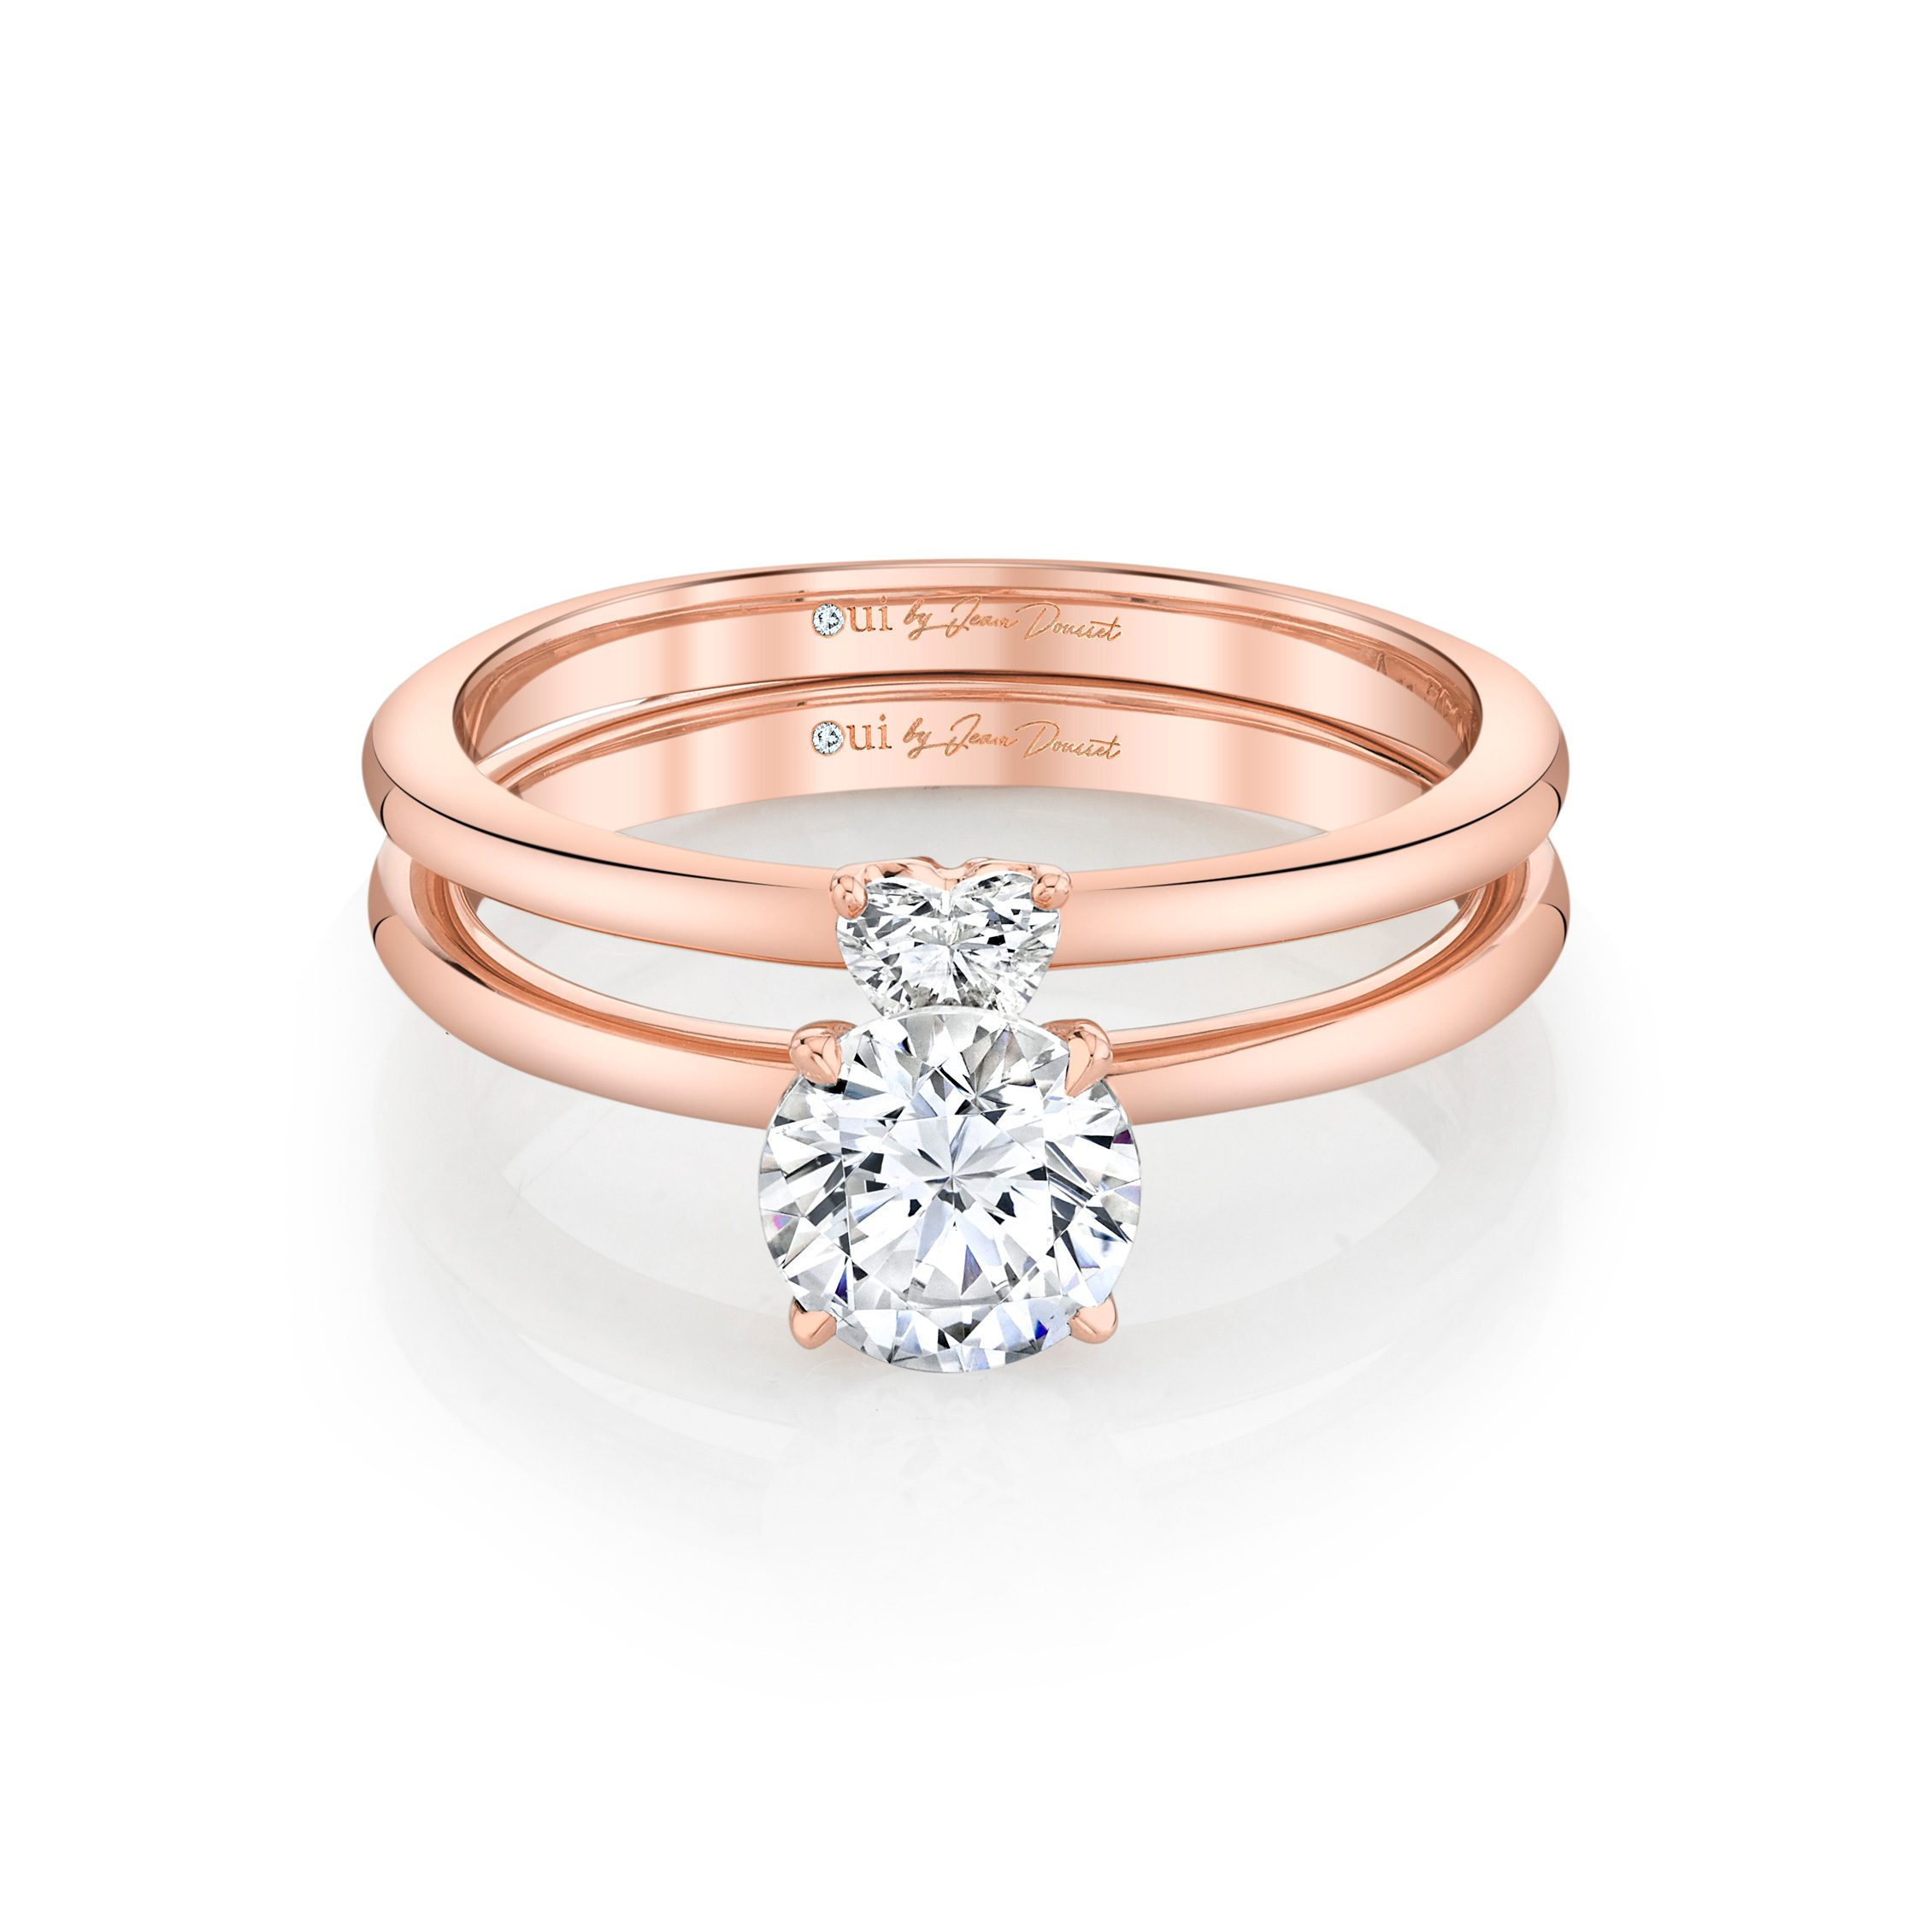 Perfect Duo Interlocking Round Brilliant Solitaire Engagement Ring & Heart Diamond Wedding Band Set 18k Rose Gold Front View by Oui by Jean Dousset